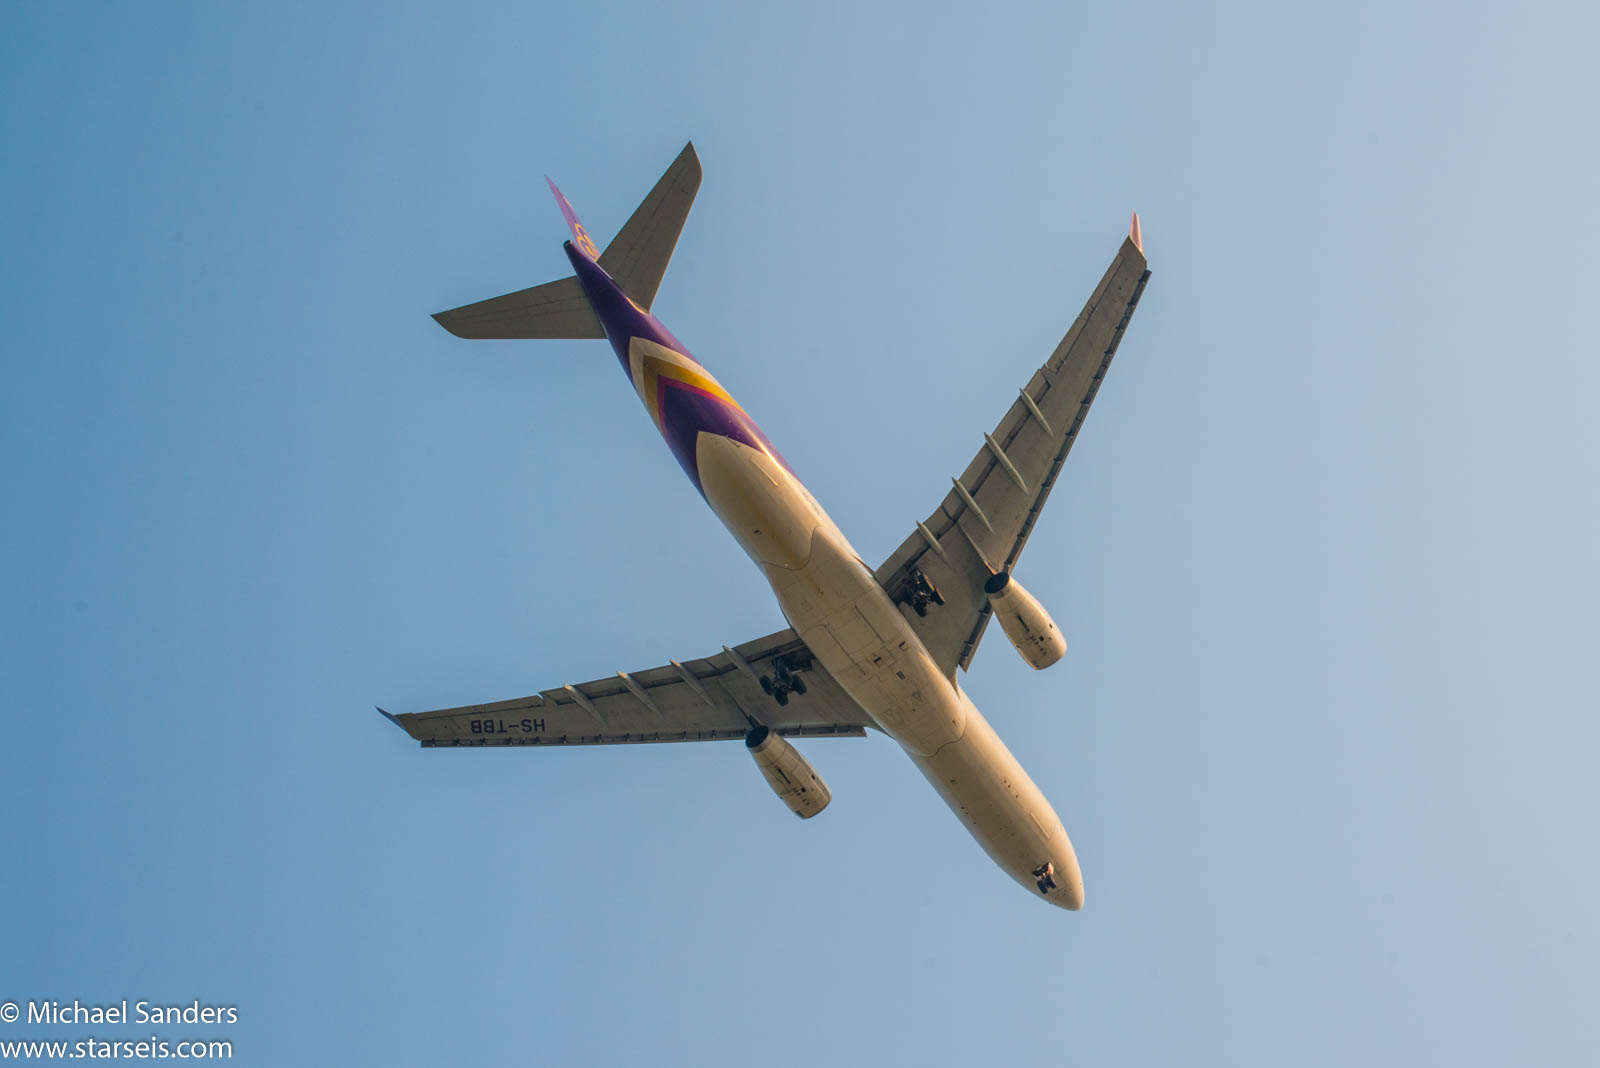 Thai Airways A330 HS-TBB